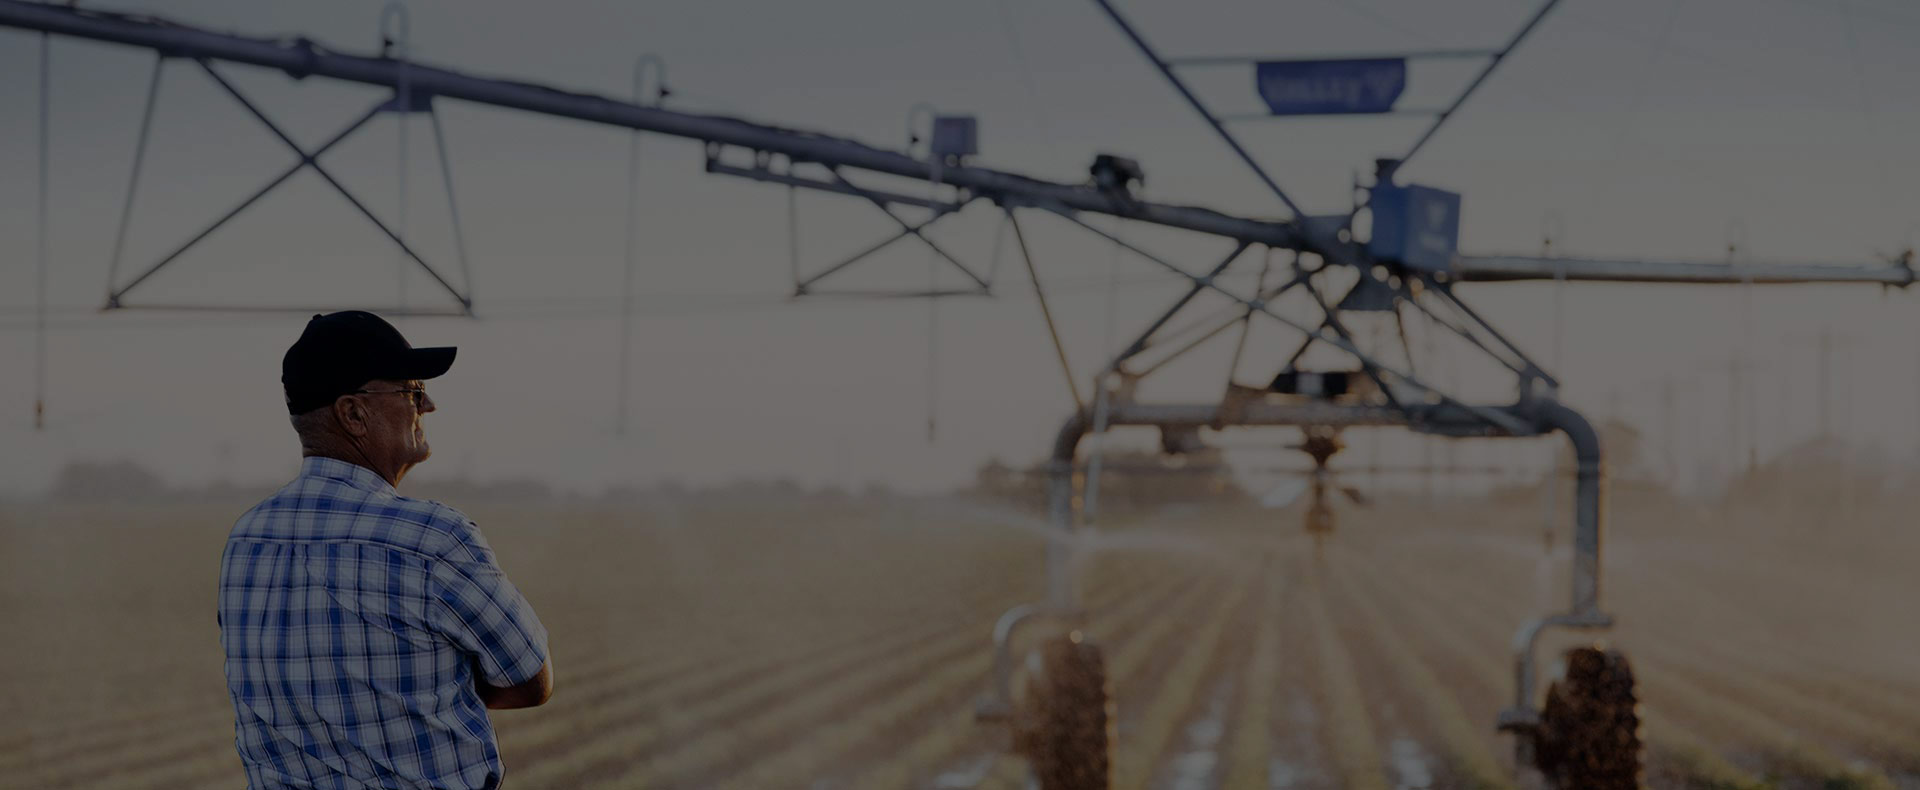 farmer in field looking at valley center pivot